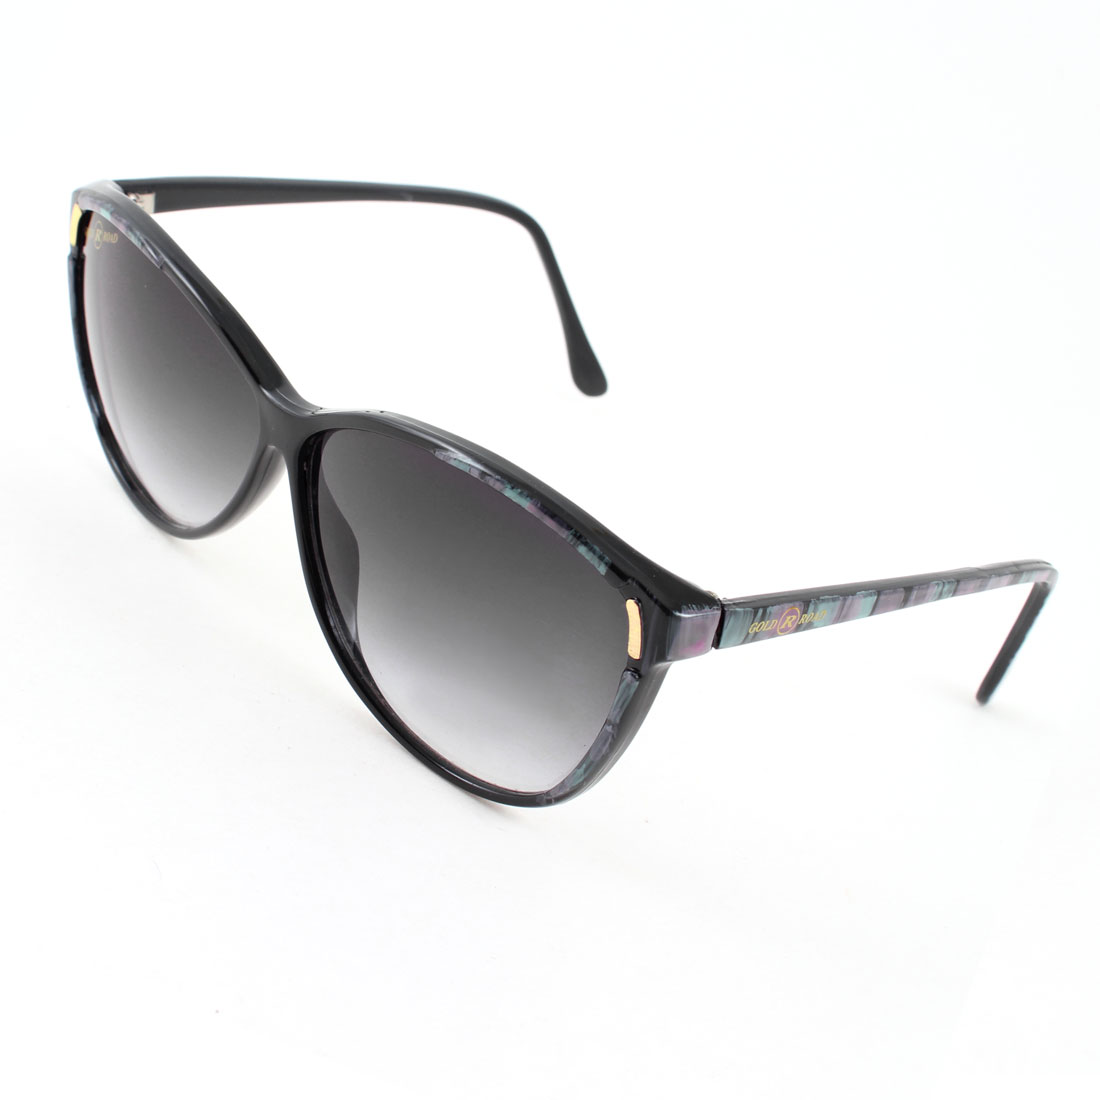 Fuchsia Teal Striped Arms Full Frame Dark Blue Lens Sunglasses for Woman Lady